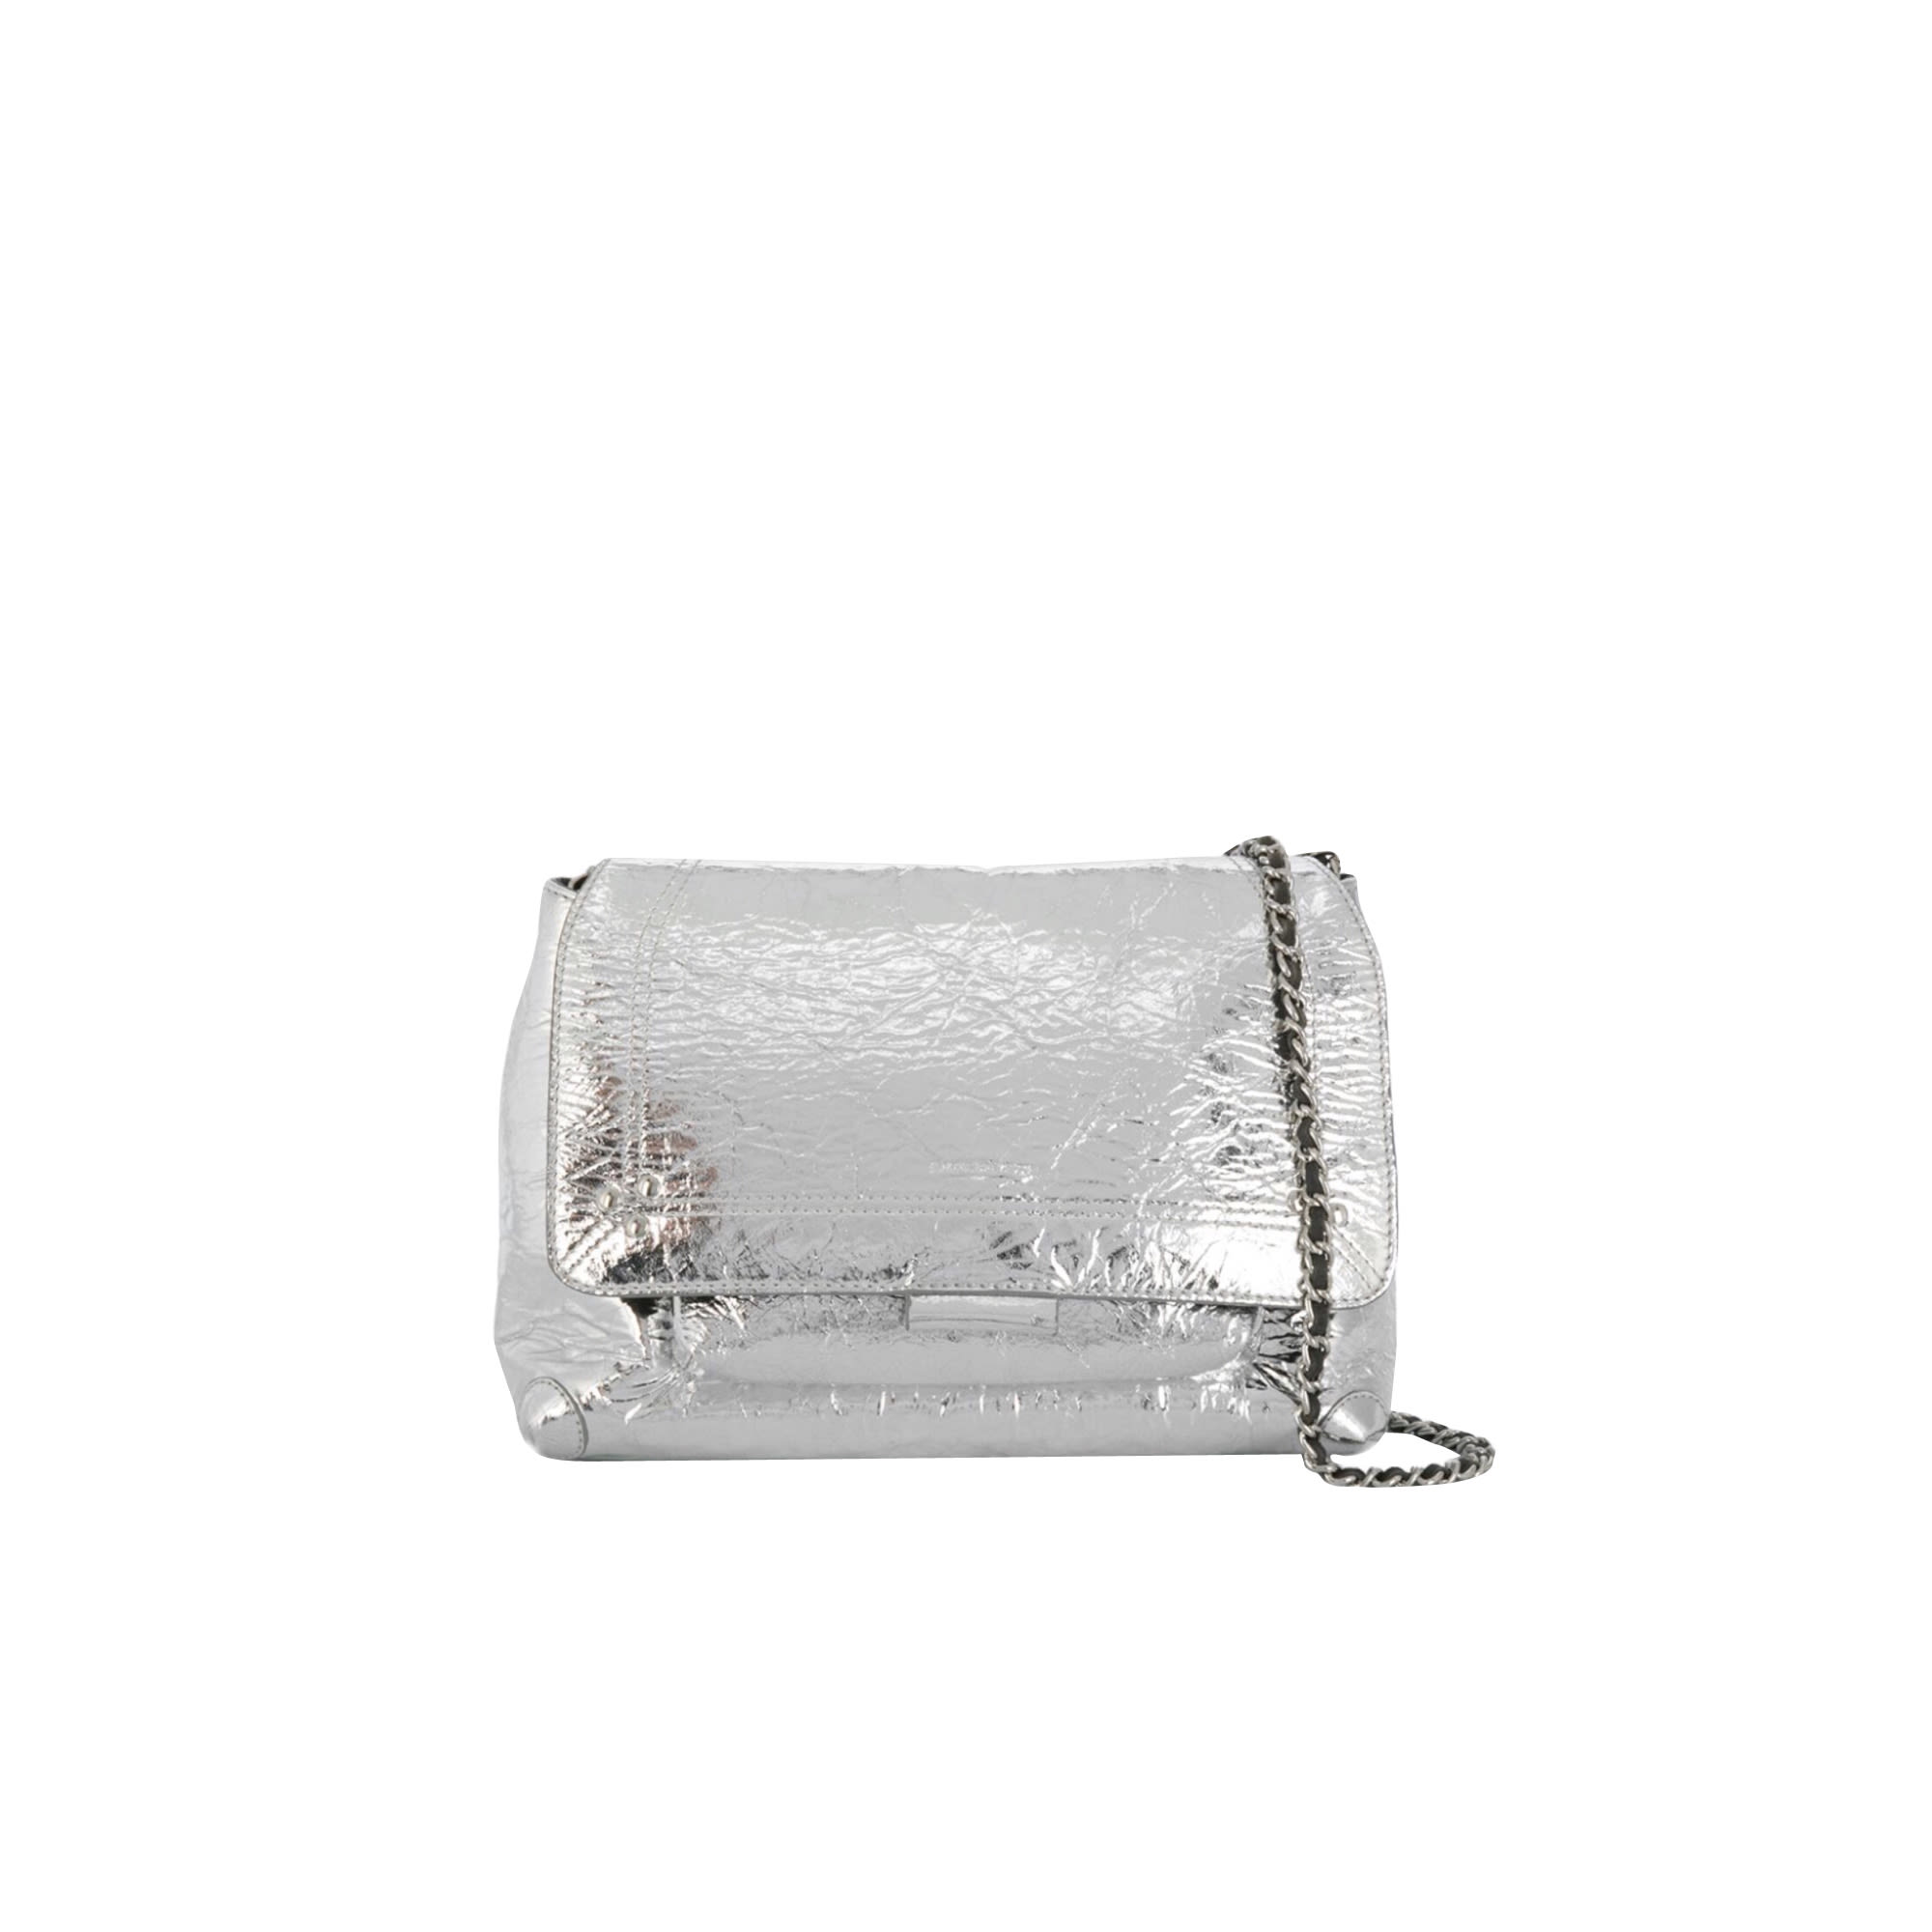 Leather Shoulder Bag JEROME DREYFUSS Silver